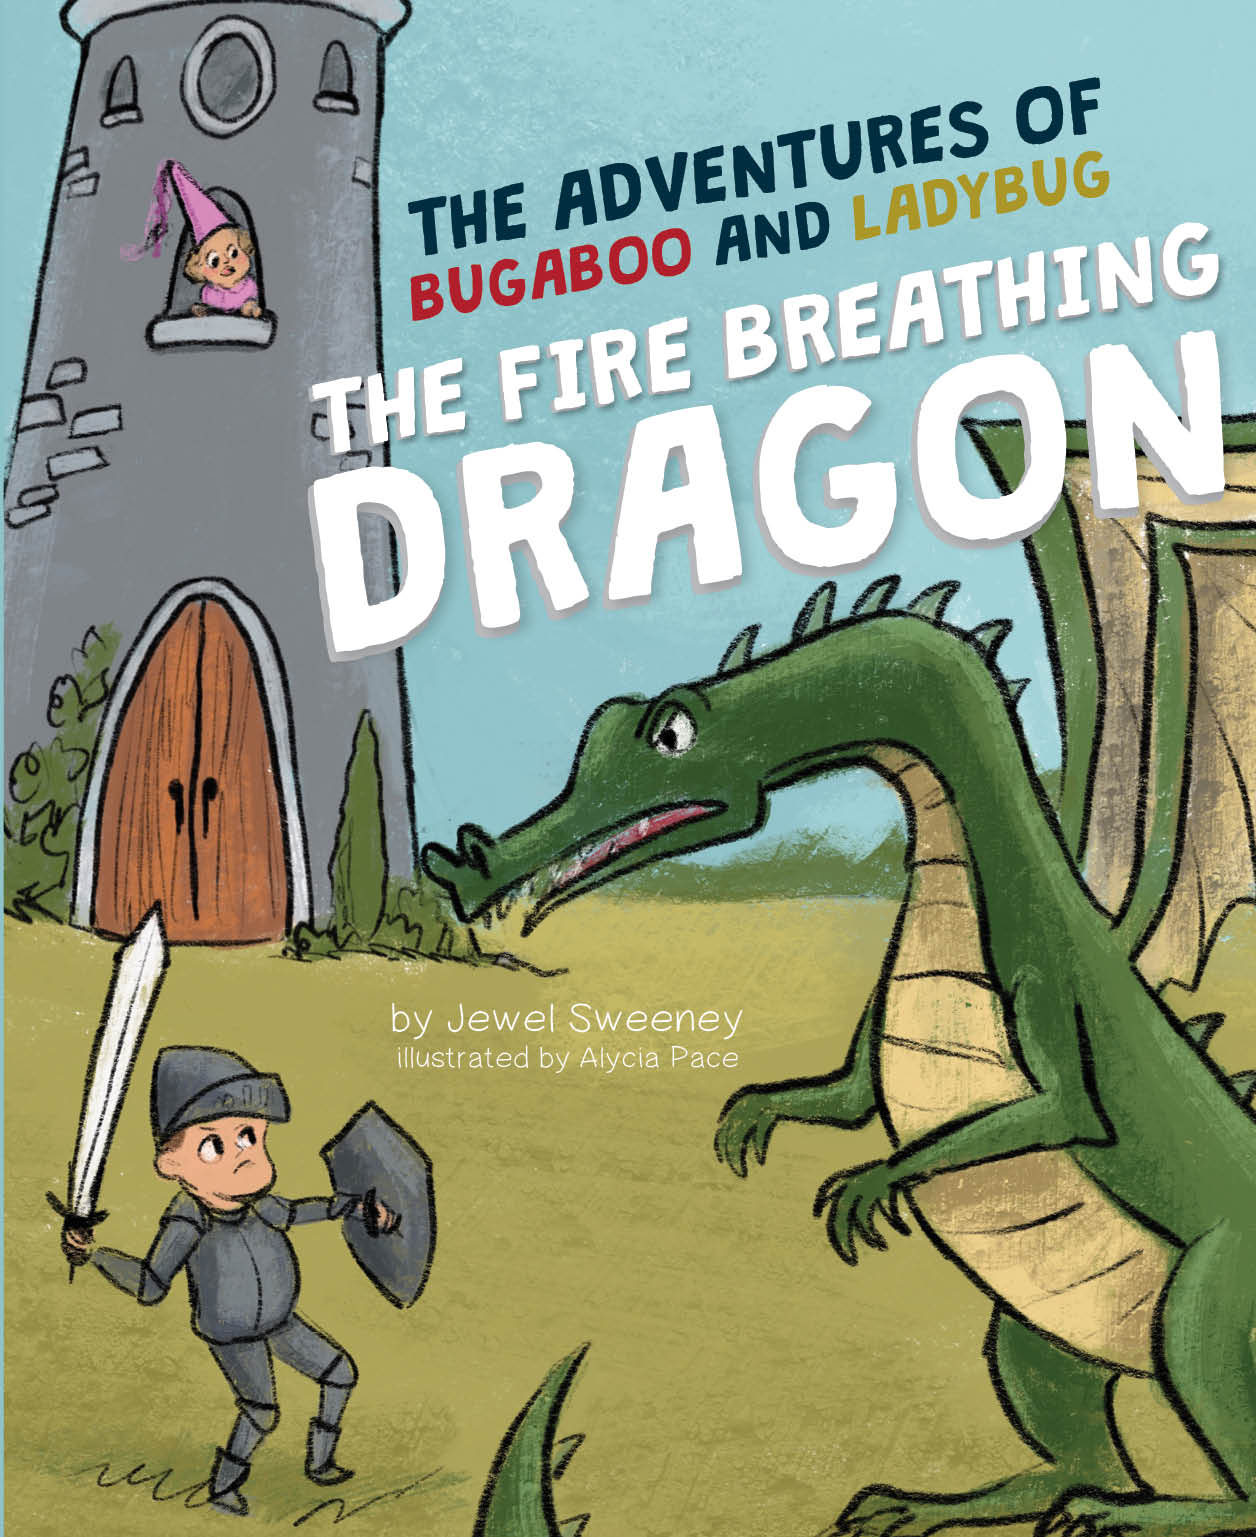 TheAdventuresofBugabooandLadybugTheFireBreathingDragon_Amazon